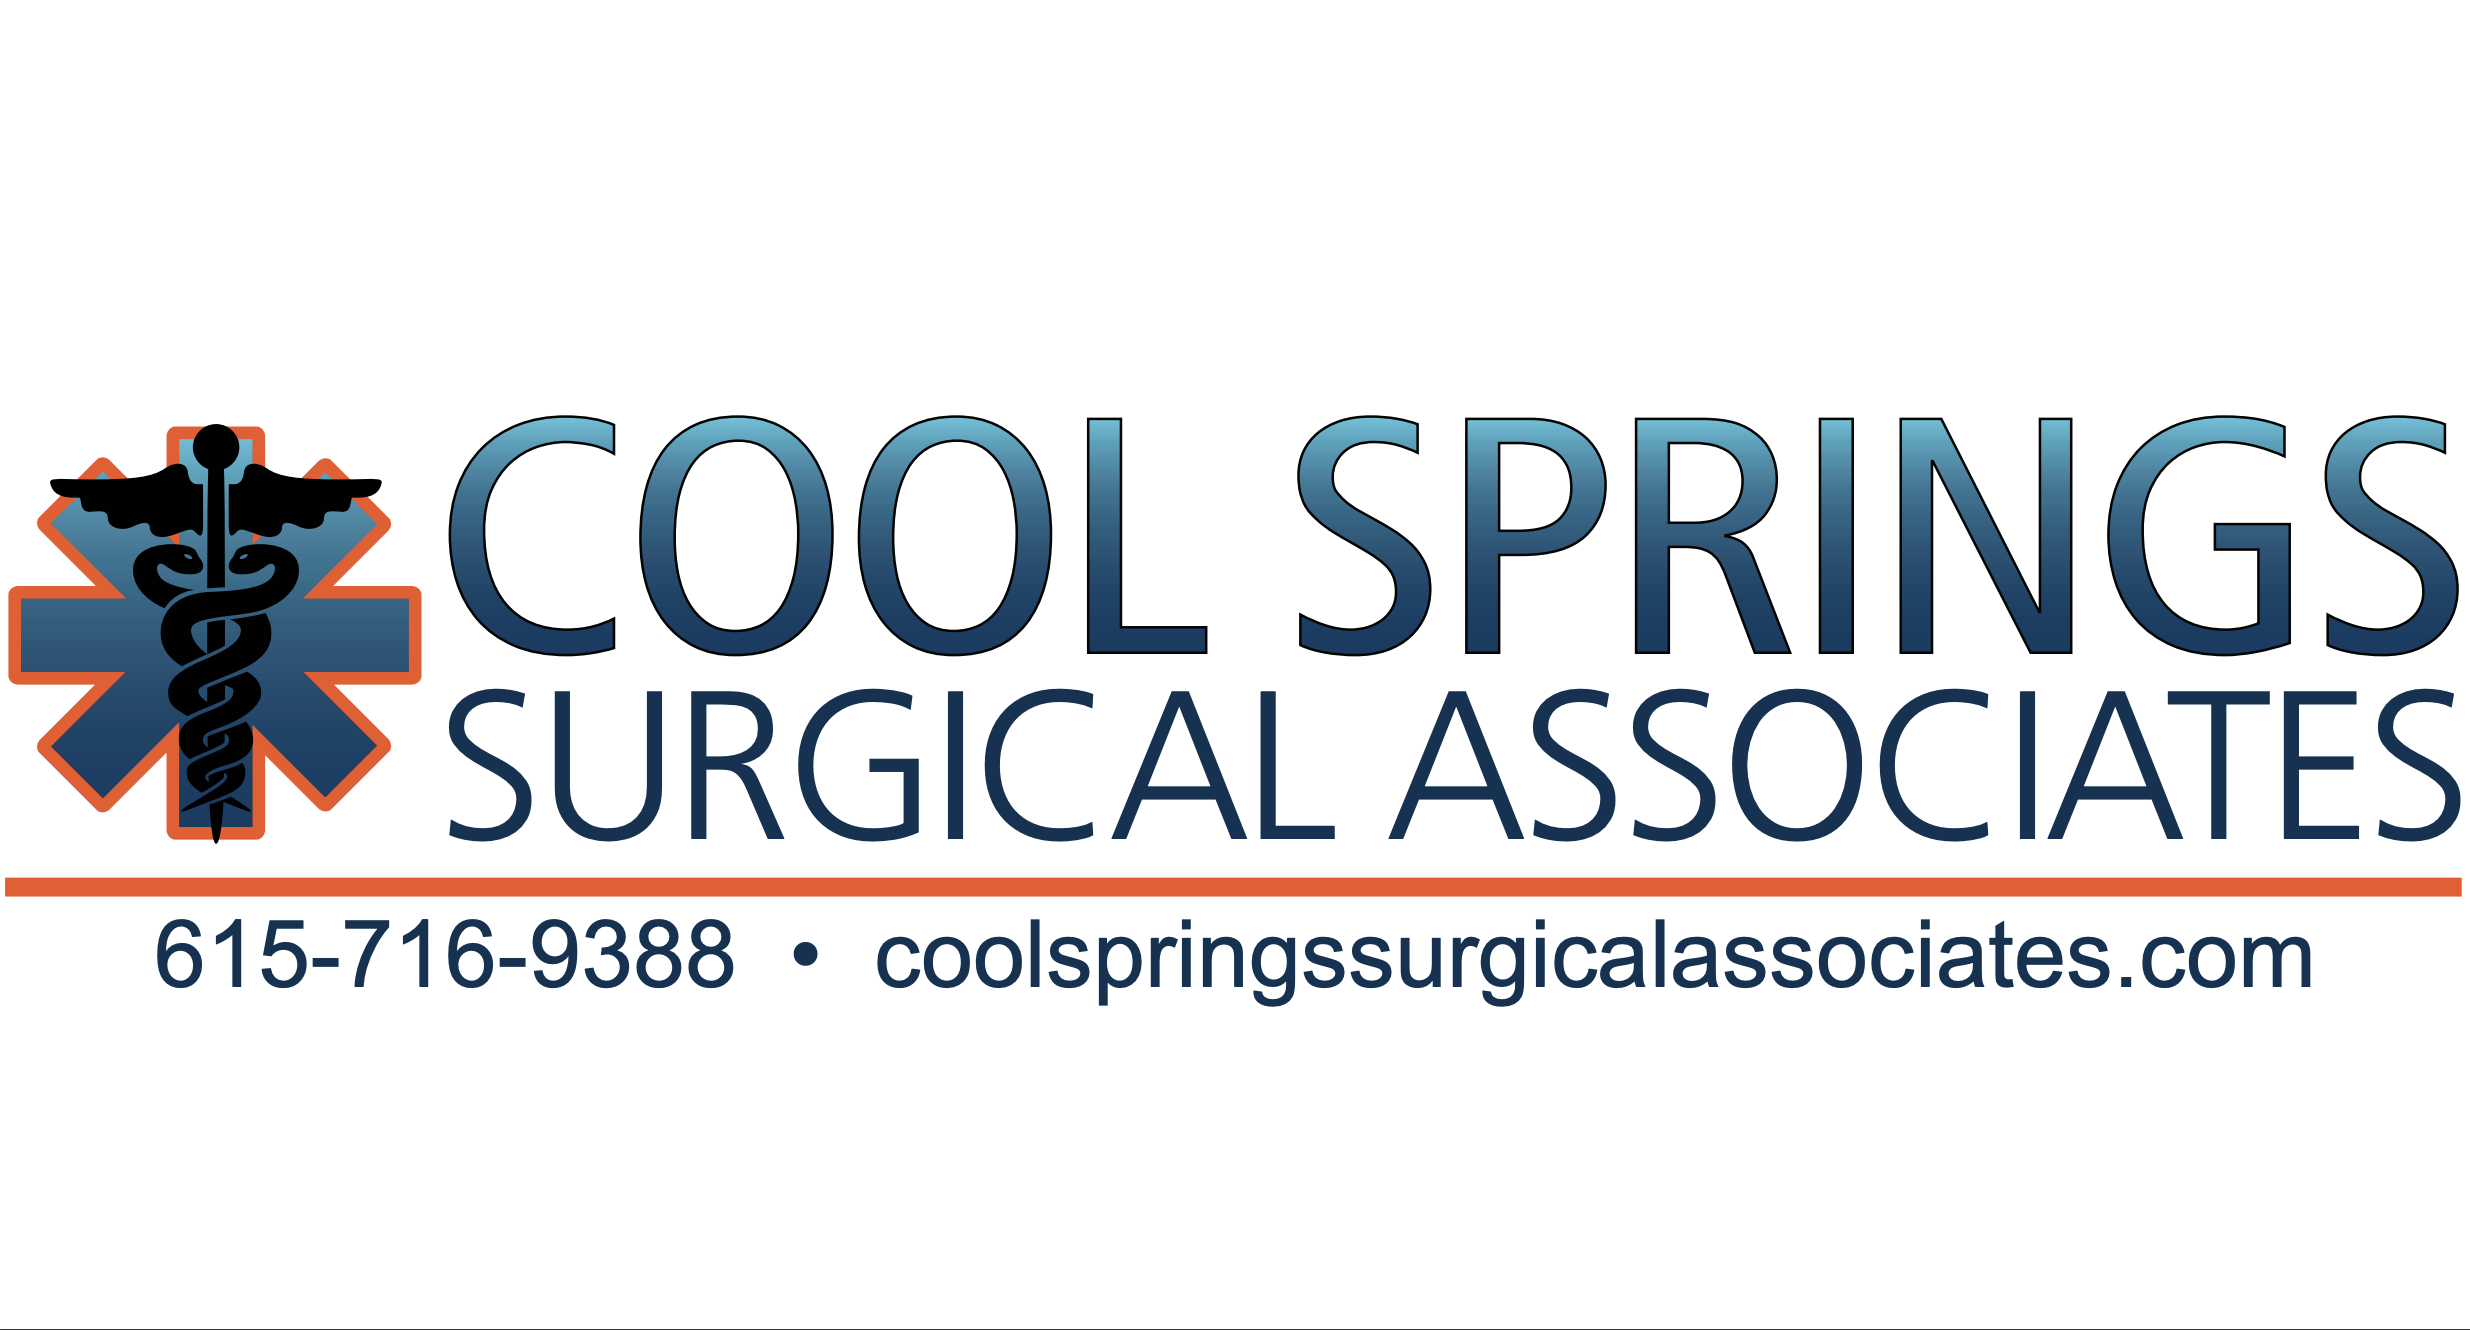 Cool Springs Surgical Associates emphasize expert skill, exceptional patient care